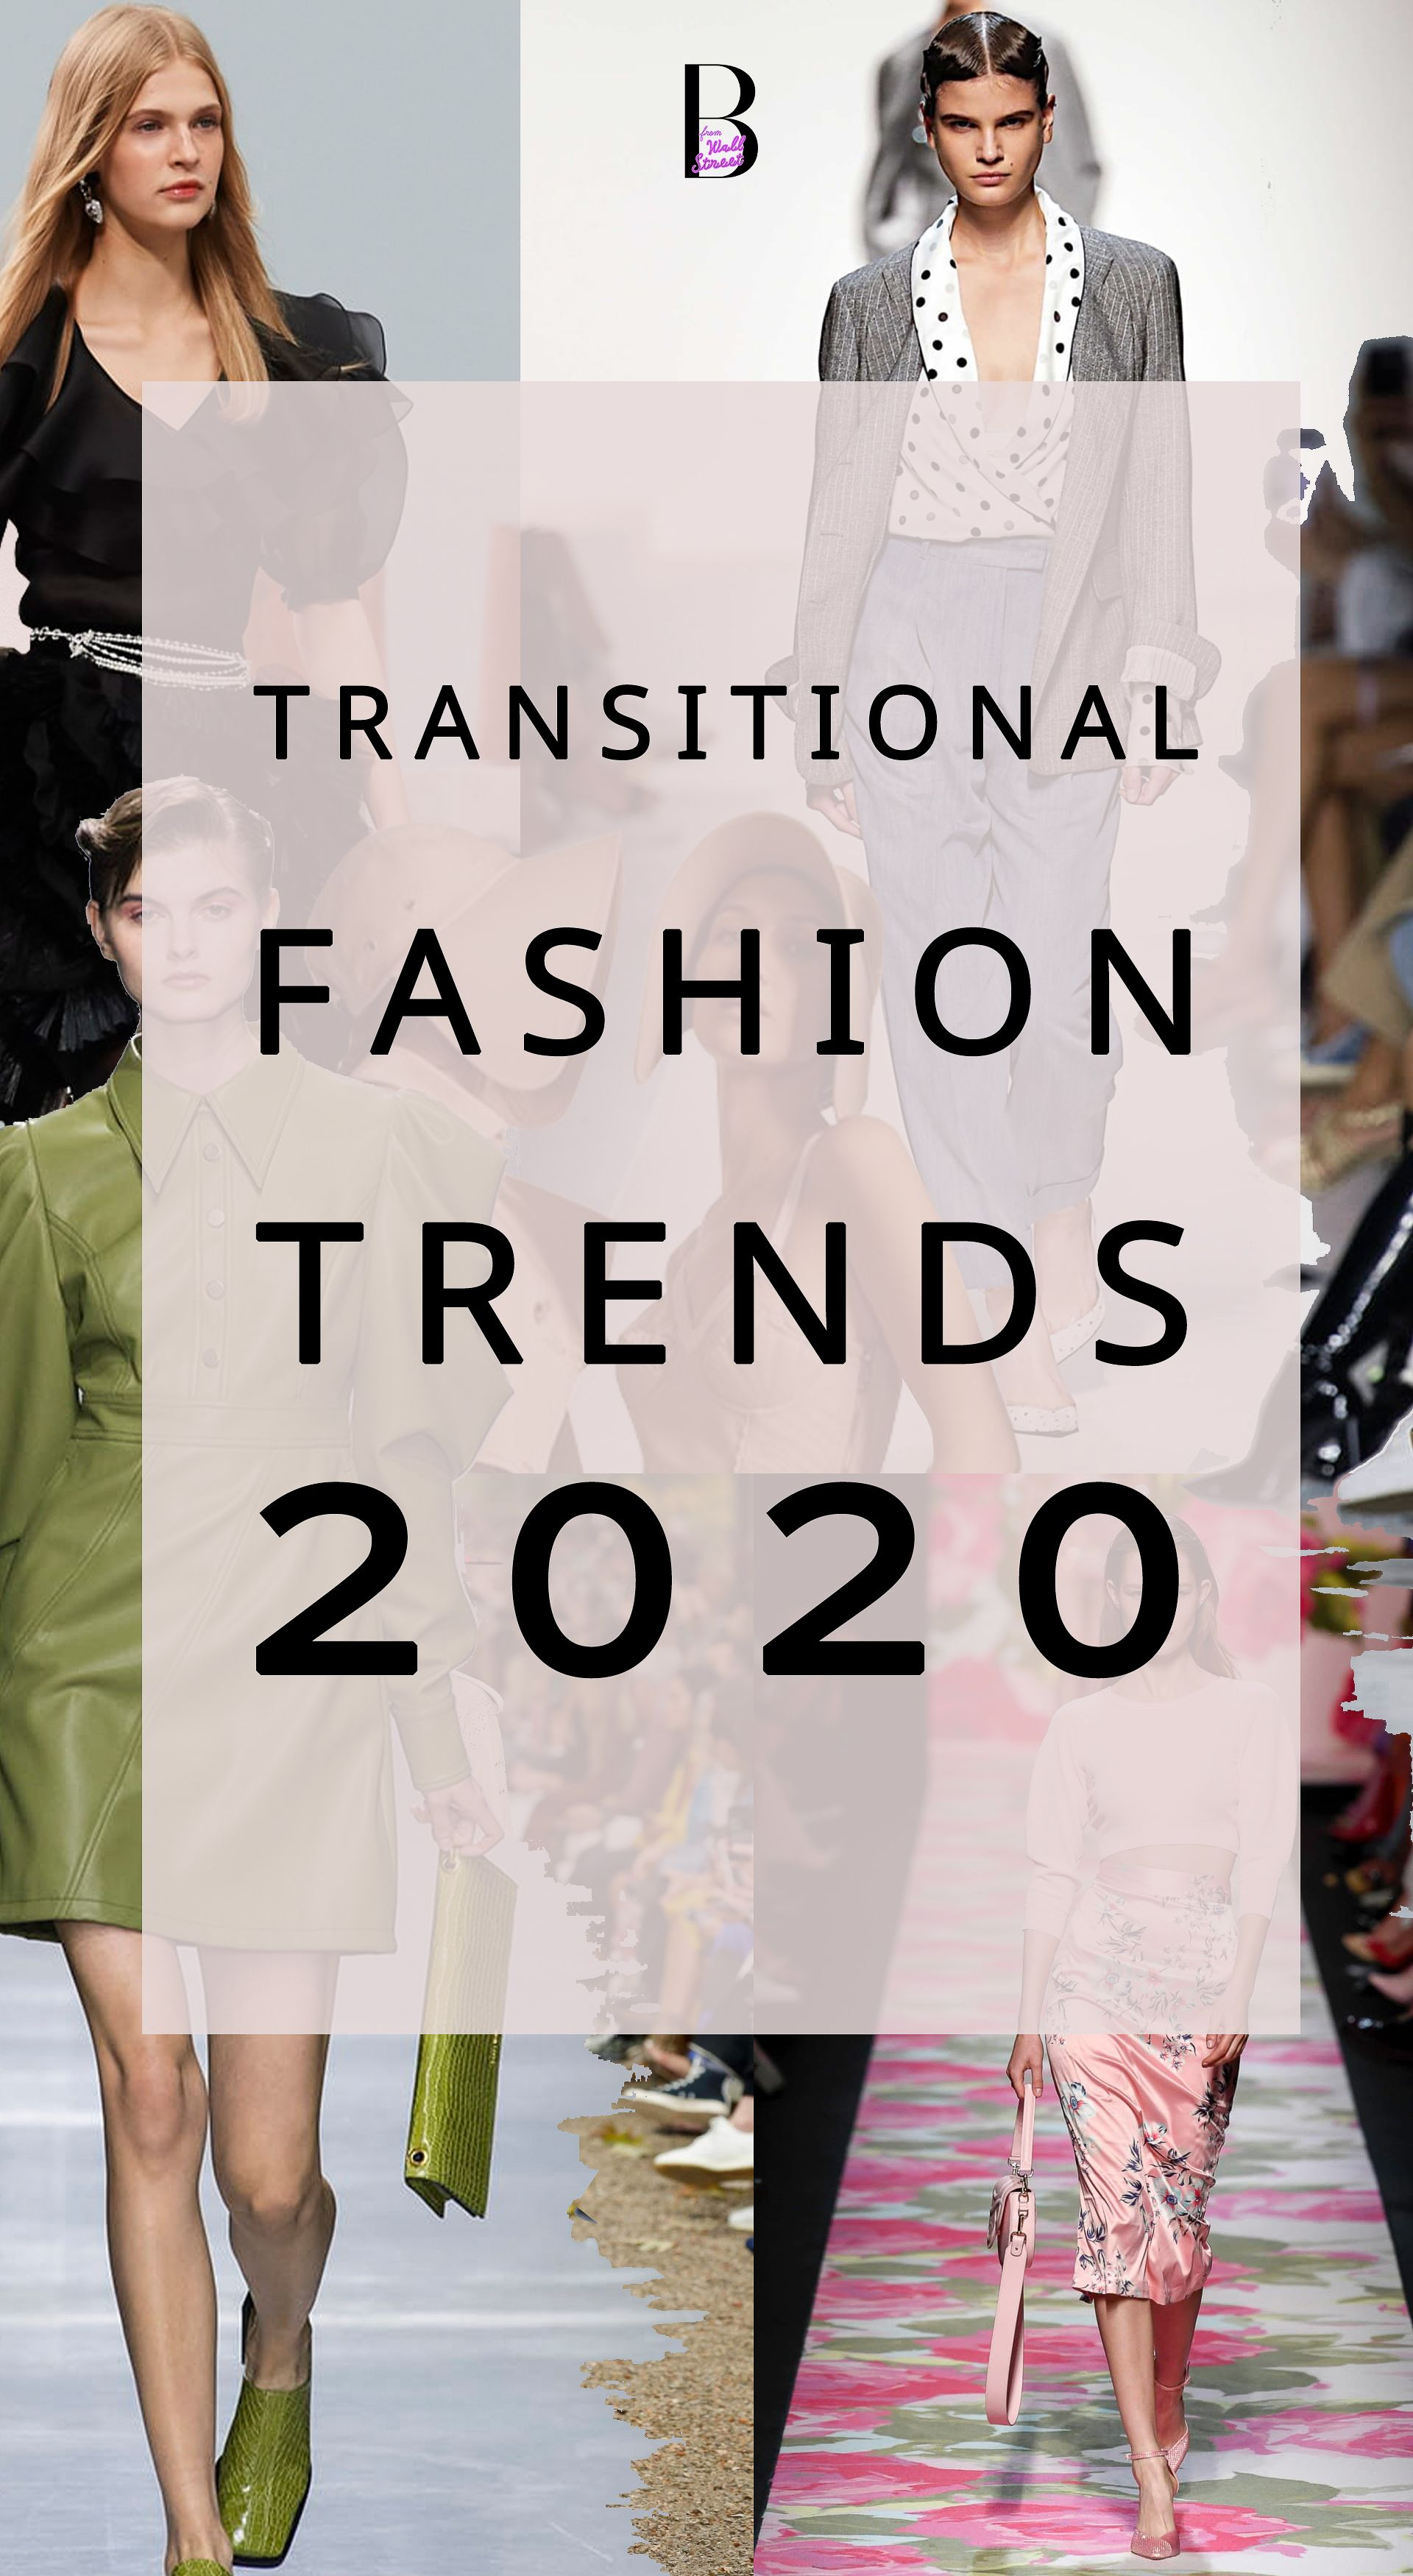 Fashion Trends That Never Go Out of Style  Transitional fashion